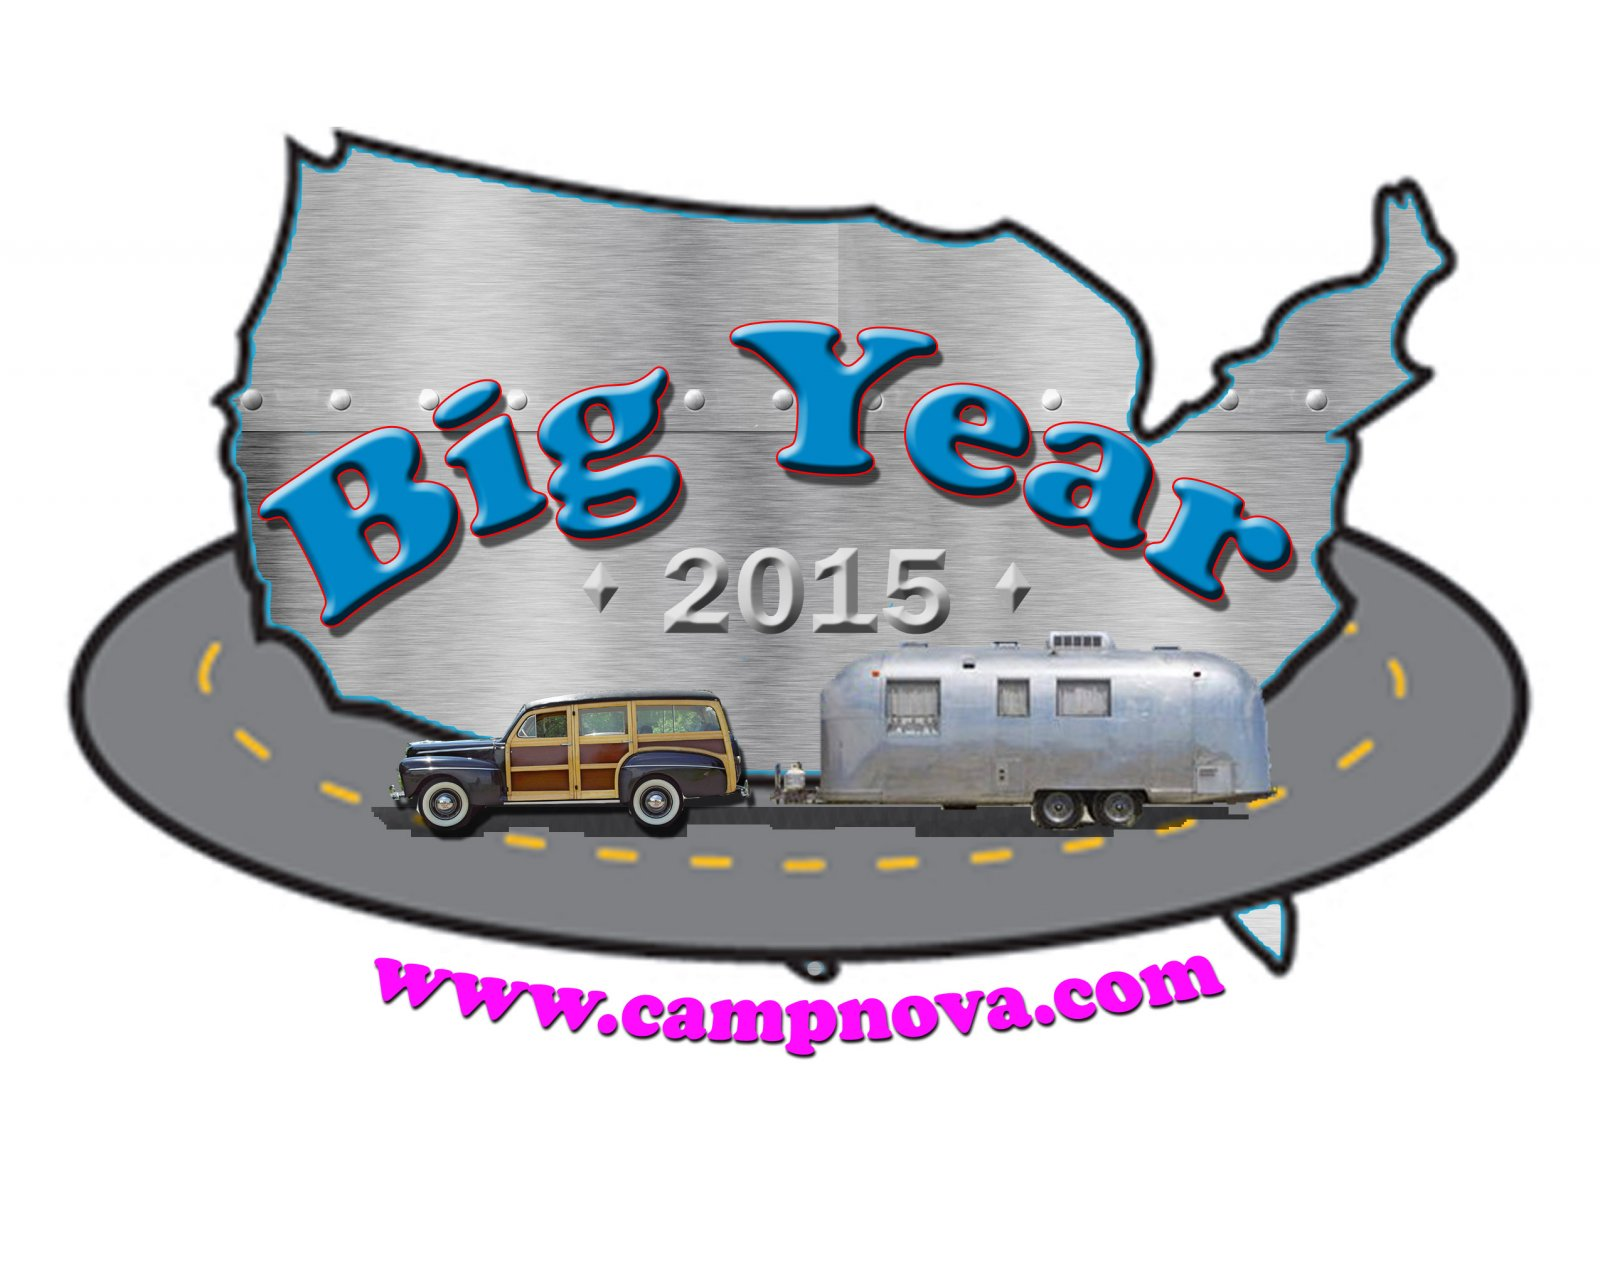 Click image for larger version  Name:logo 2015 copy.jpg Views:54 Size:189.5 KB ID:229934